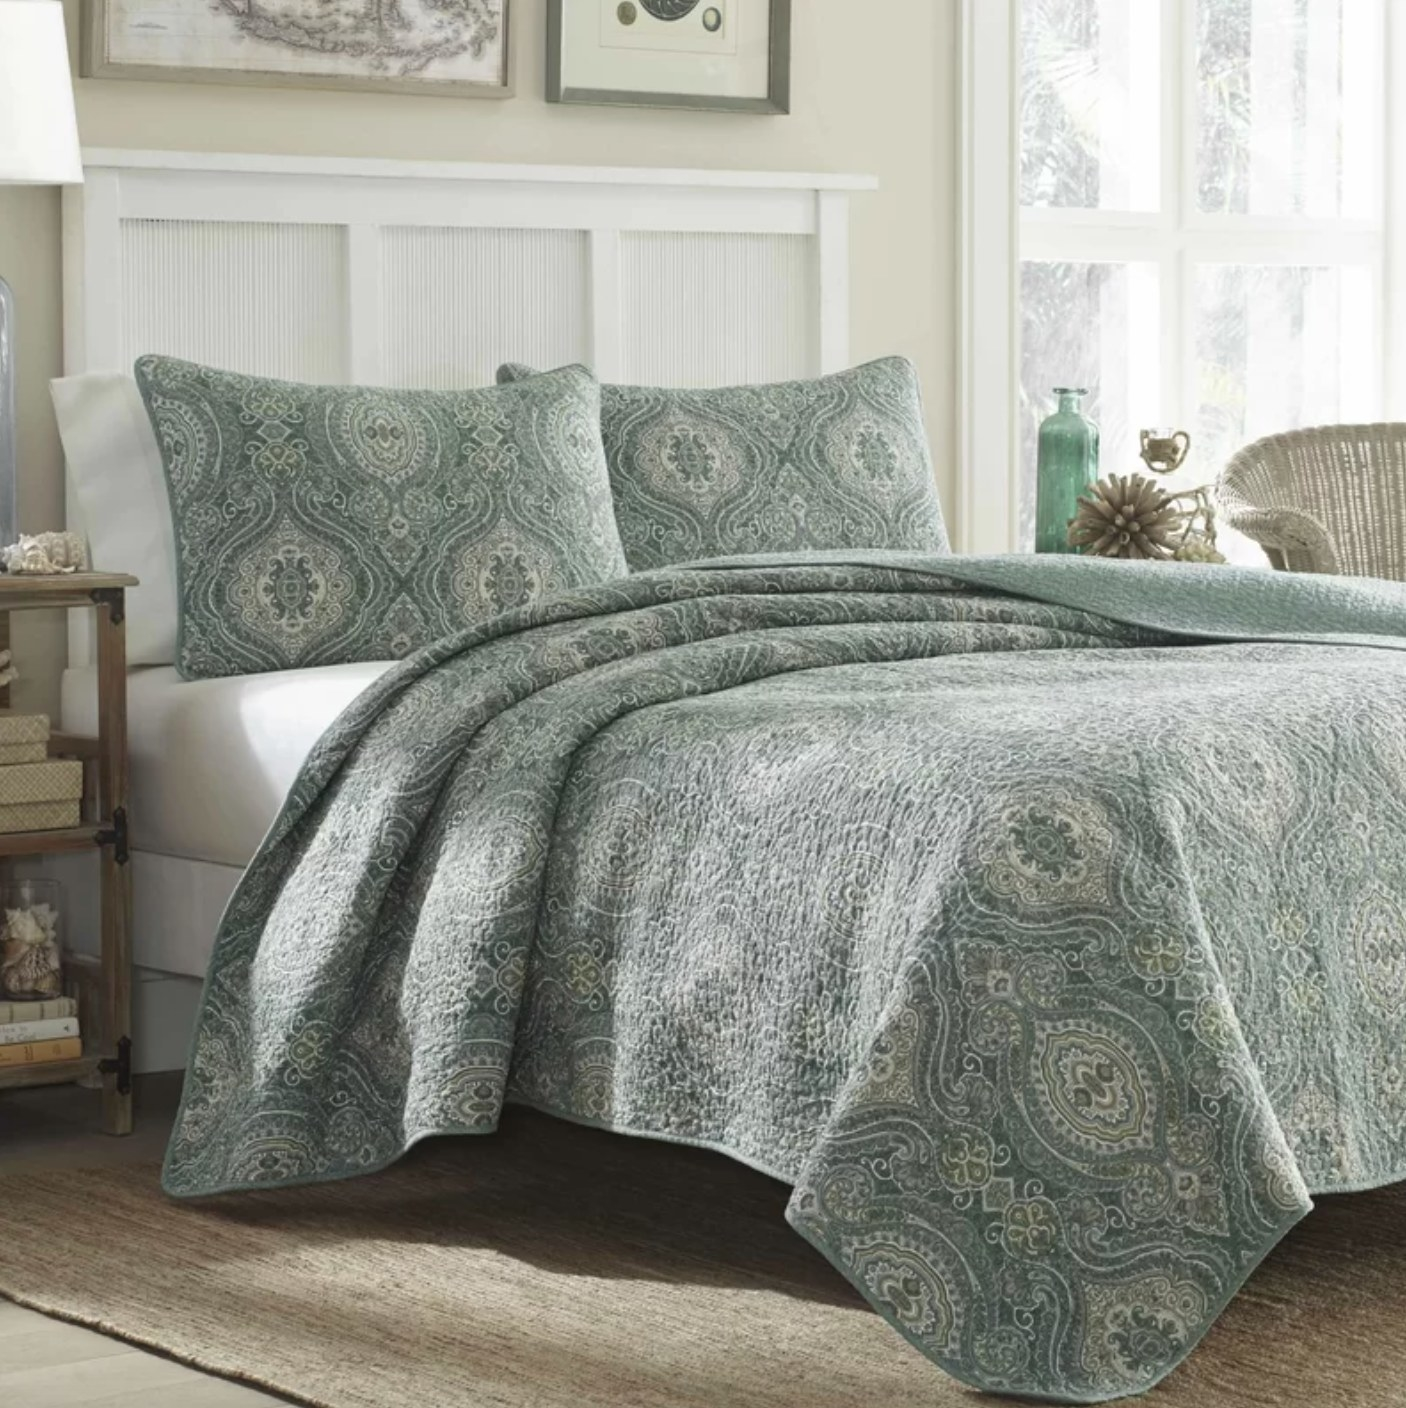 The reversible geometric cotton two-piece quilt set in green